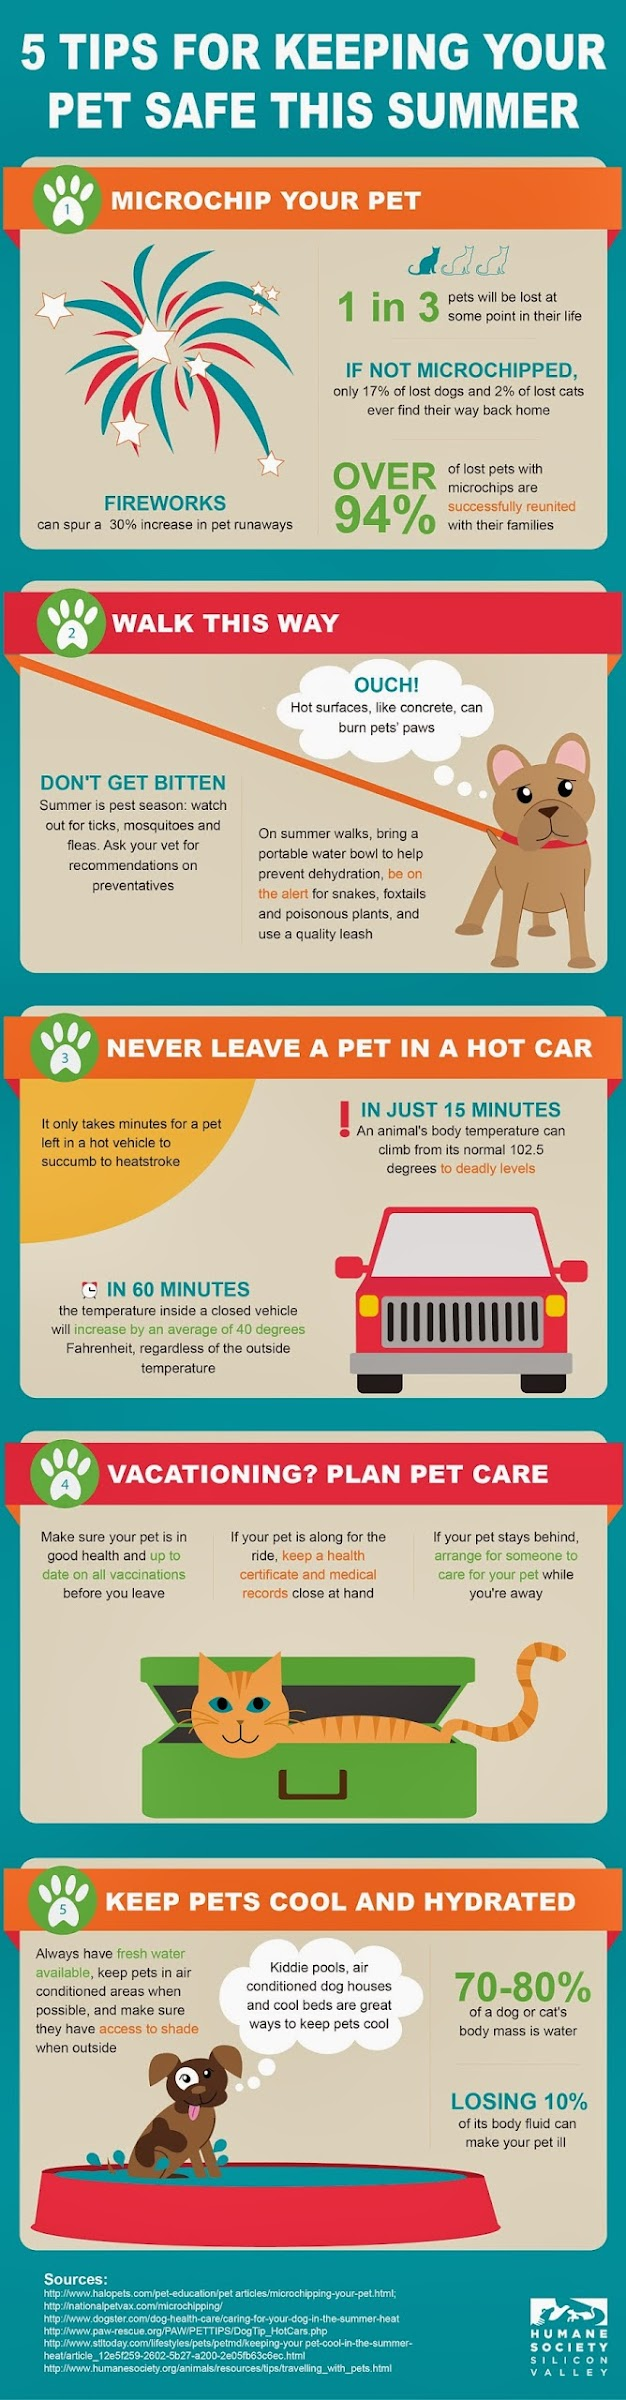 tips on keeping a pet at home Though many pet parents successfully groom their dogs at home, it will take a bit of time and effort to get your dog comfortable with a routine of at-home grooming, which can help reduce shedding in addition to further deepening your relationship with your dog.